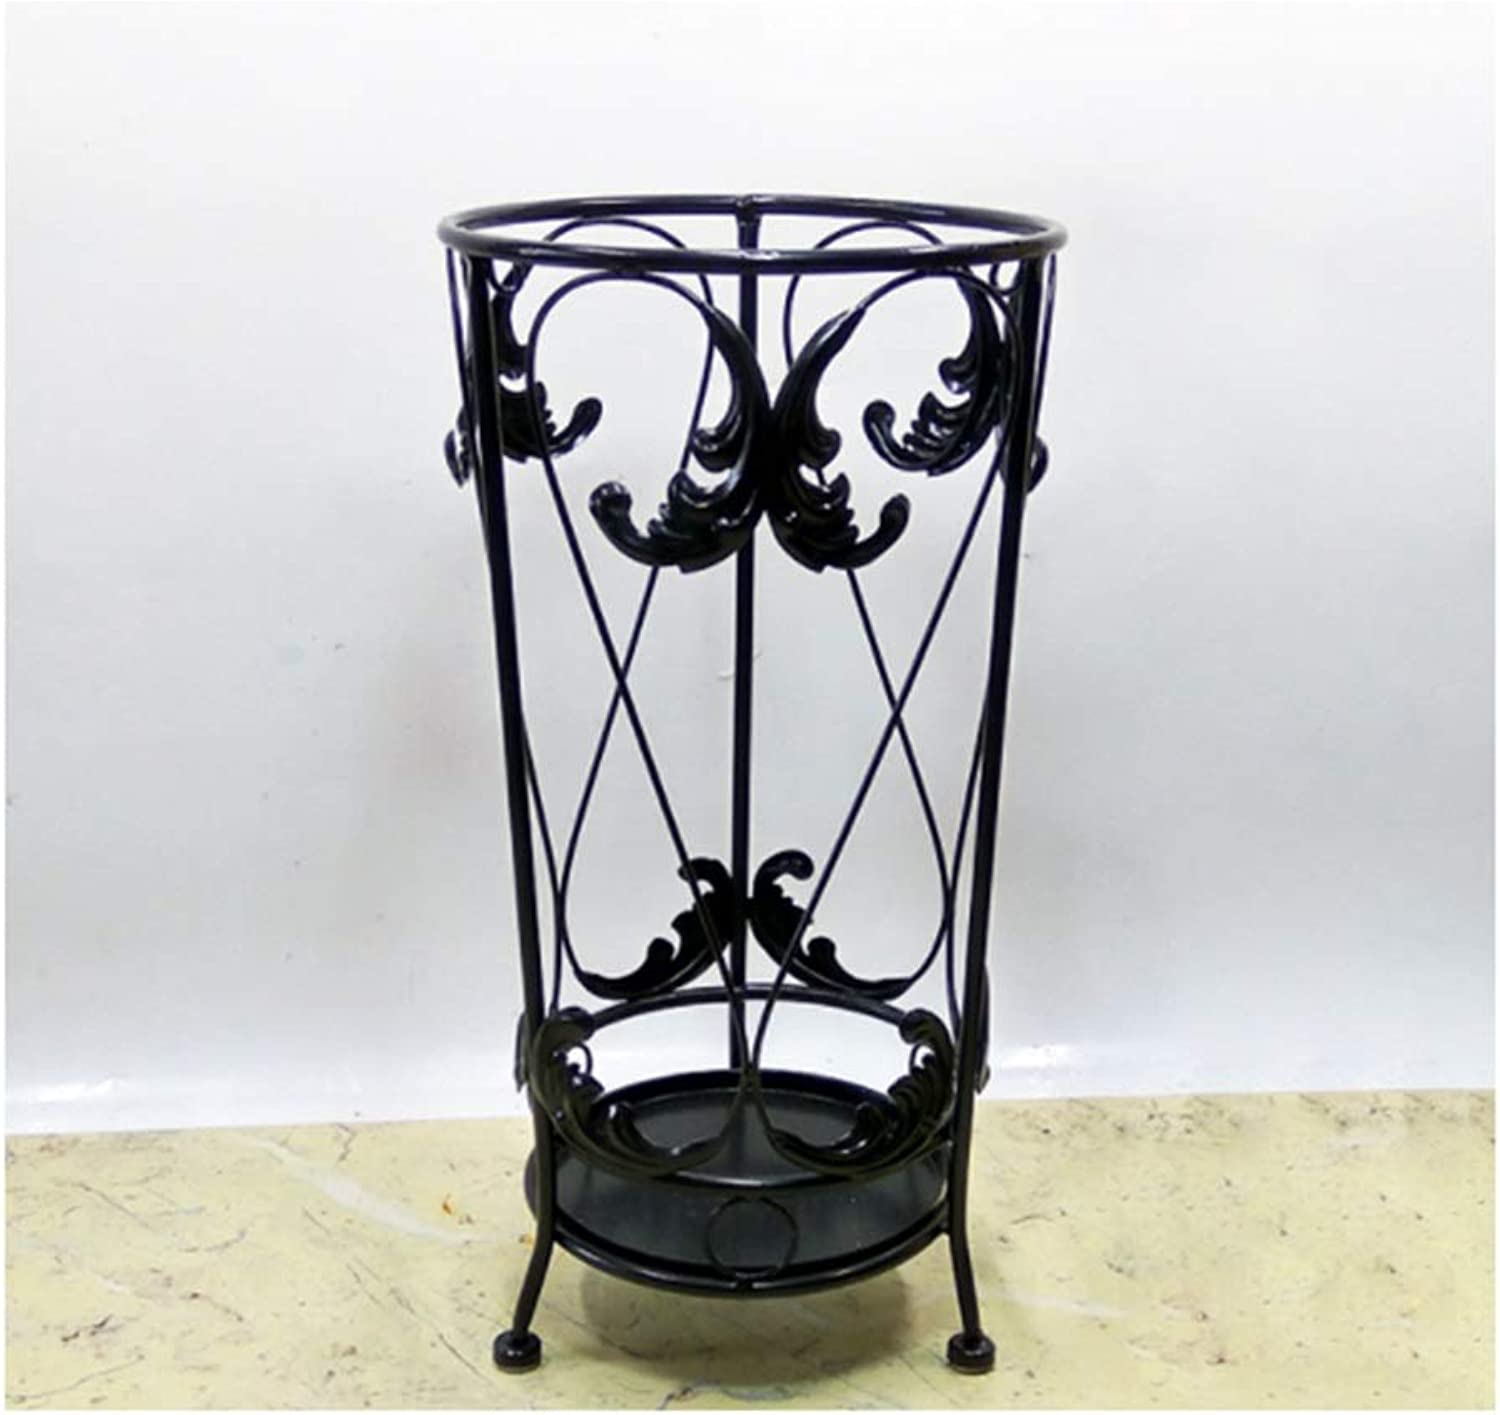 Achang Warm and Simple Carved Wrought Iron Umbrella Stand Home Hotel Large Capacity Storage Rack (color   Black)